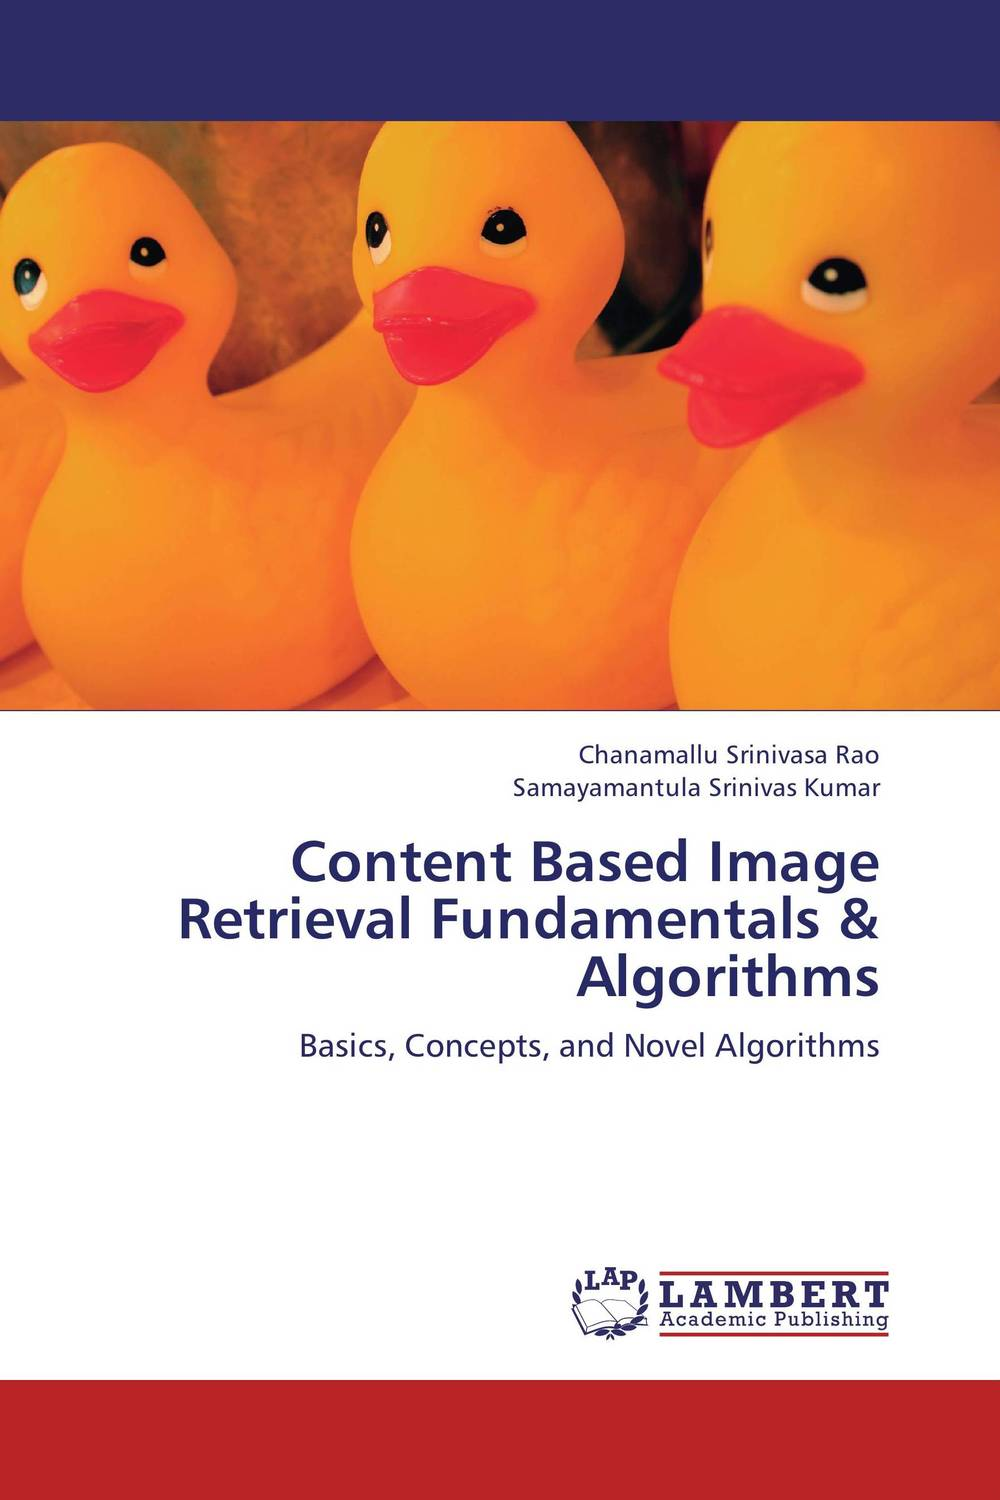 Content Based Image Retrieval Fundamentals & Algorithms new approaches for image retrieval